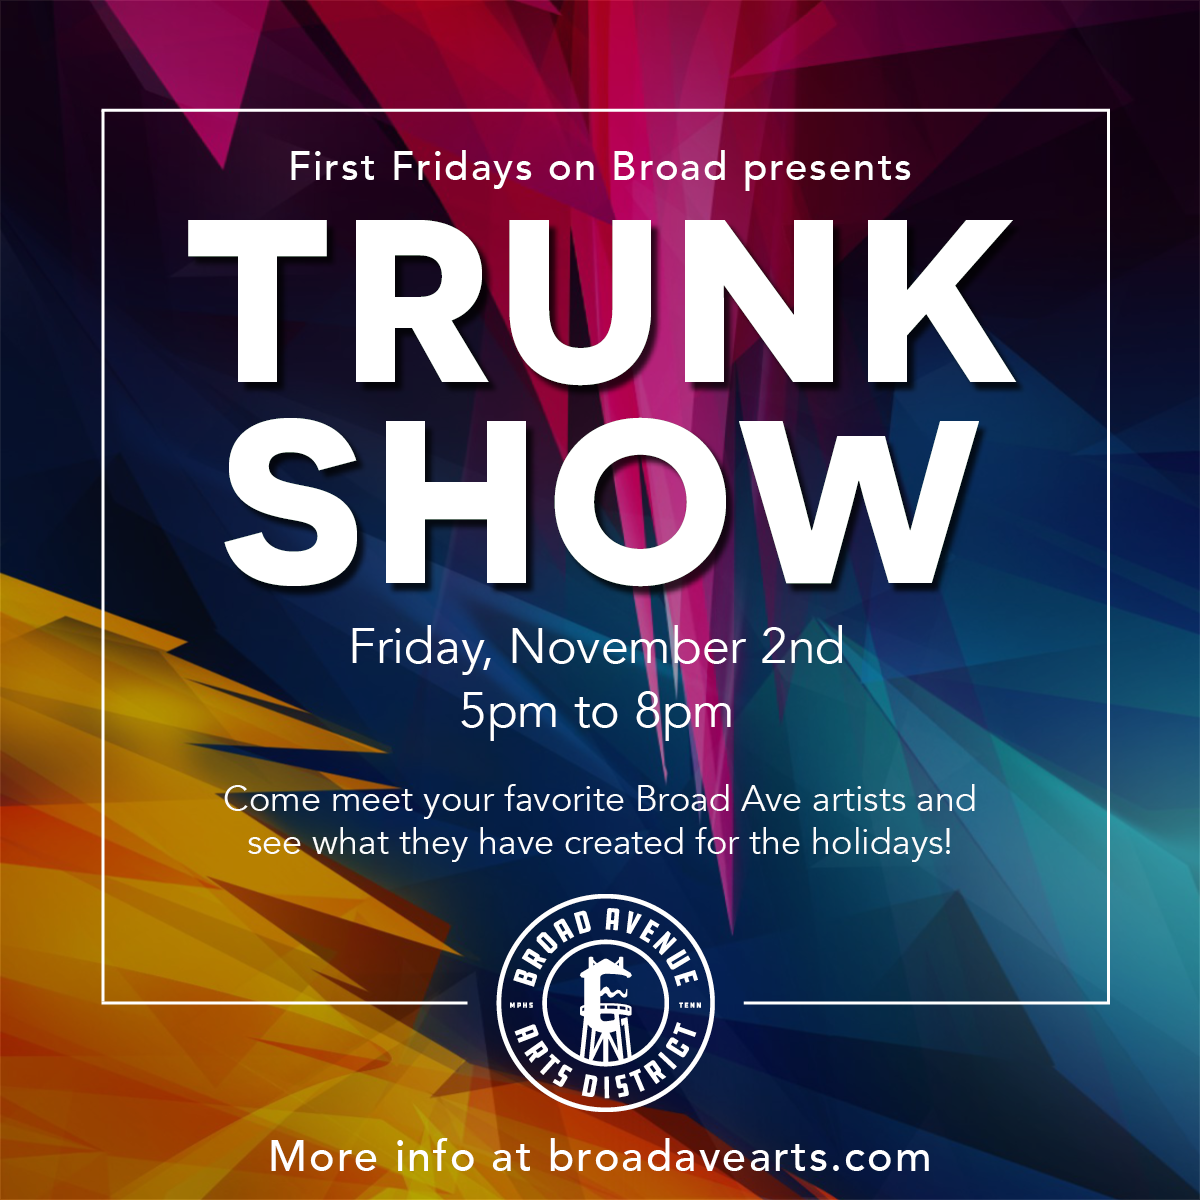 TRUNK SHOW Instagram 2018.png